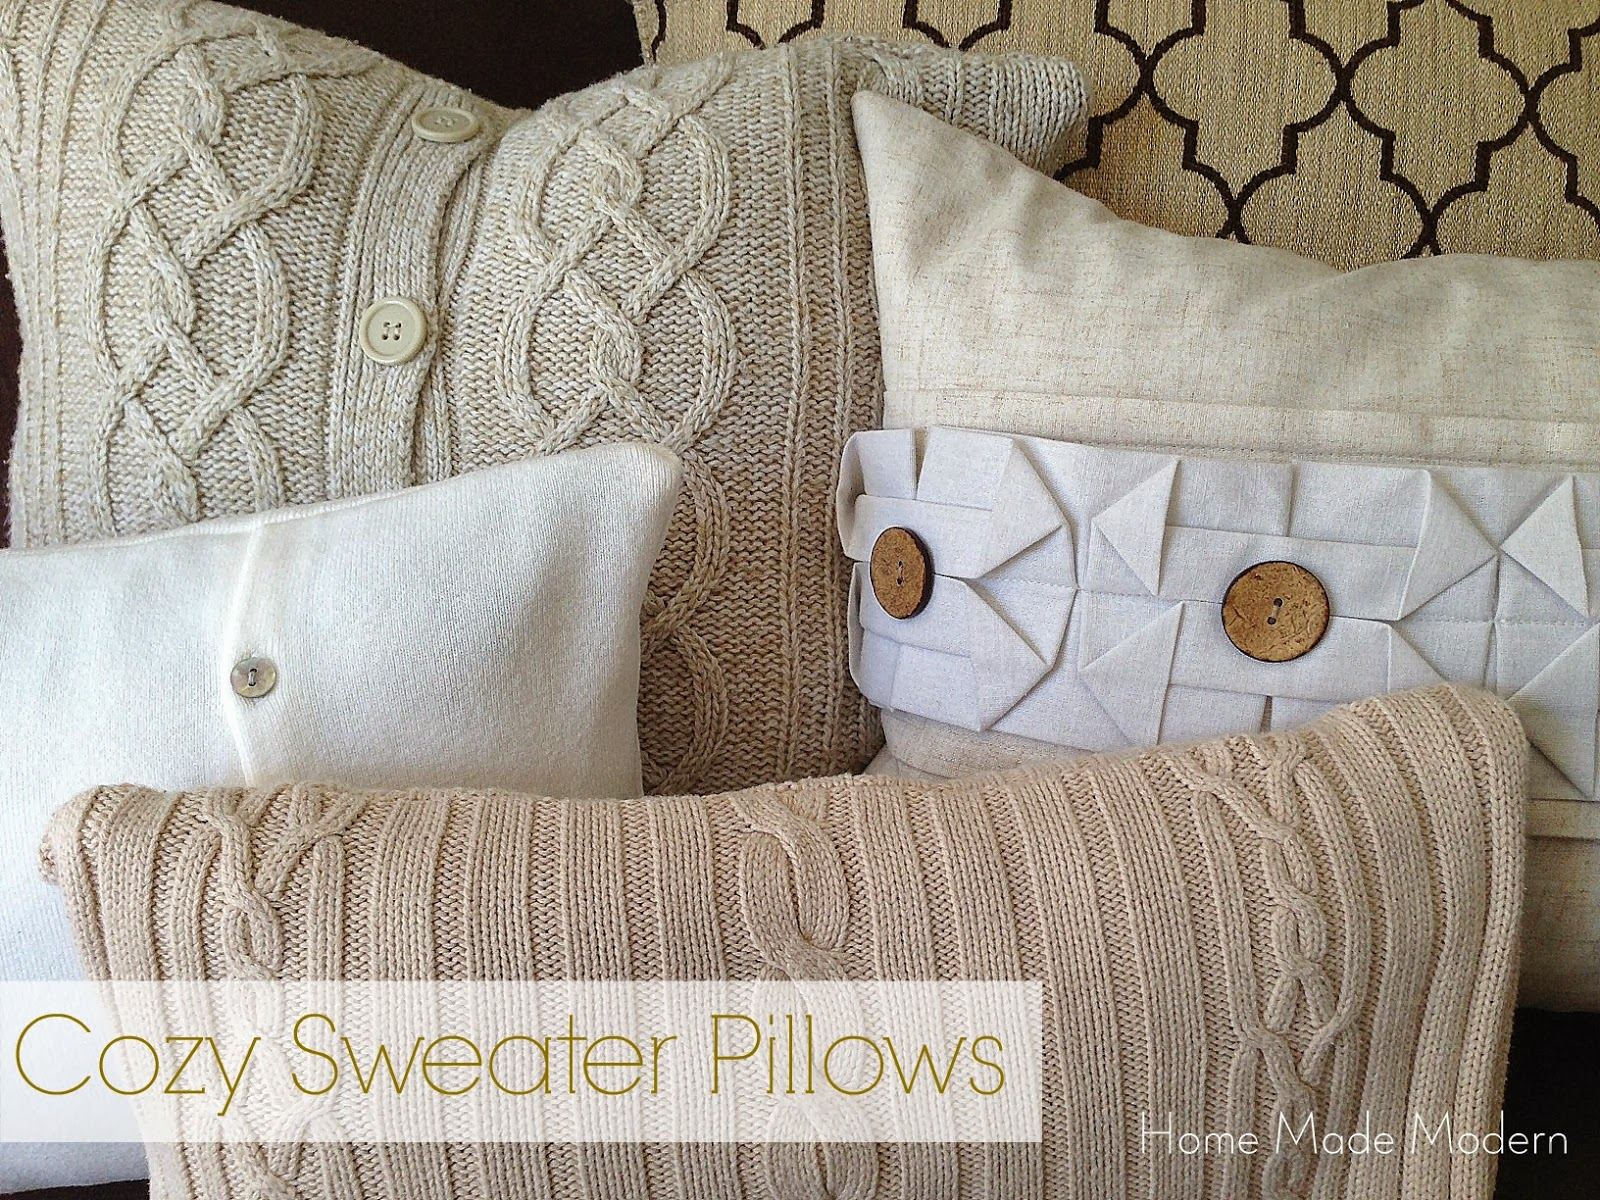 Home Made Modern: Copycat Craft: Cozy Sweater Pillows